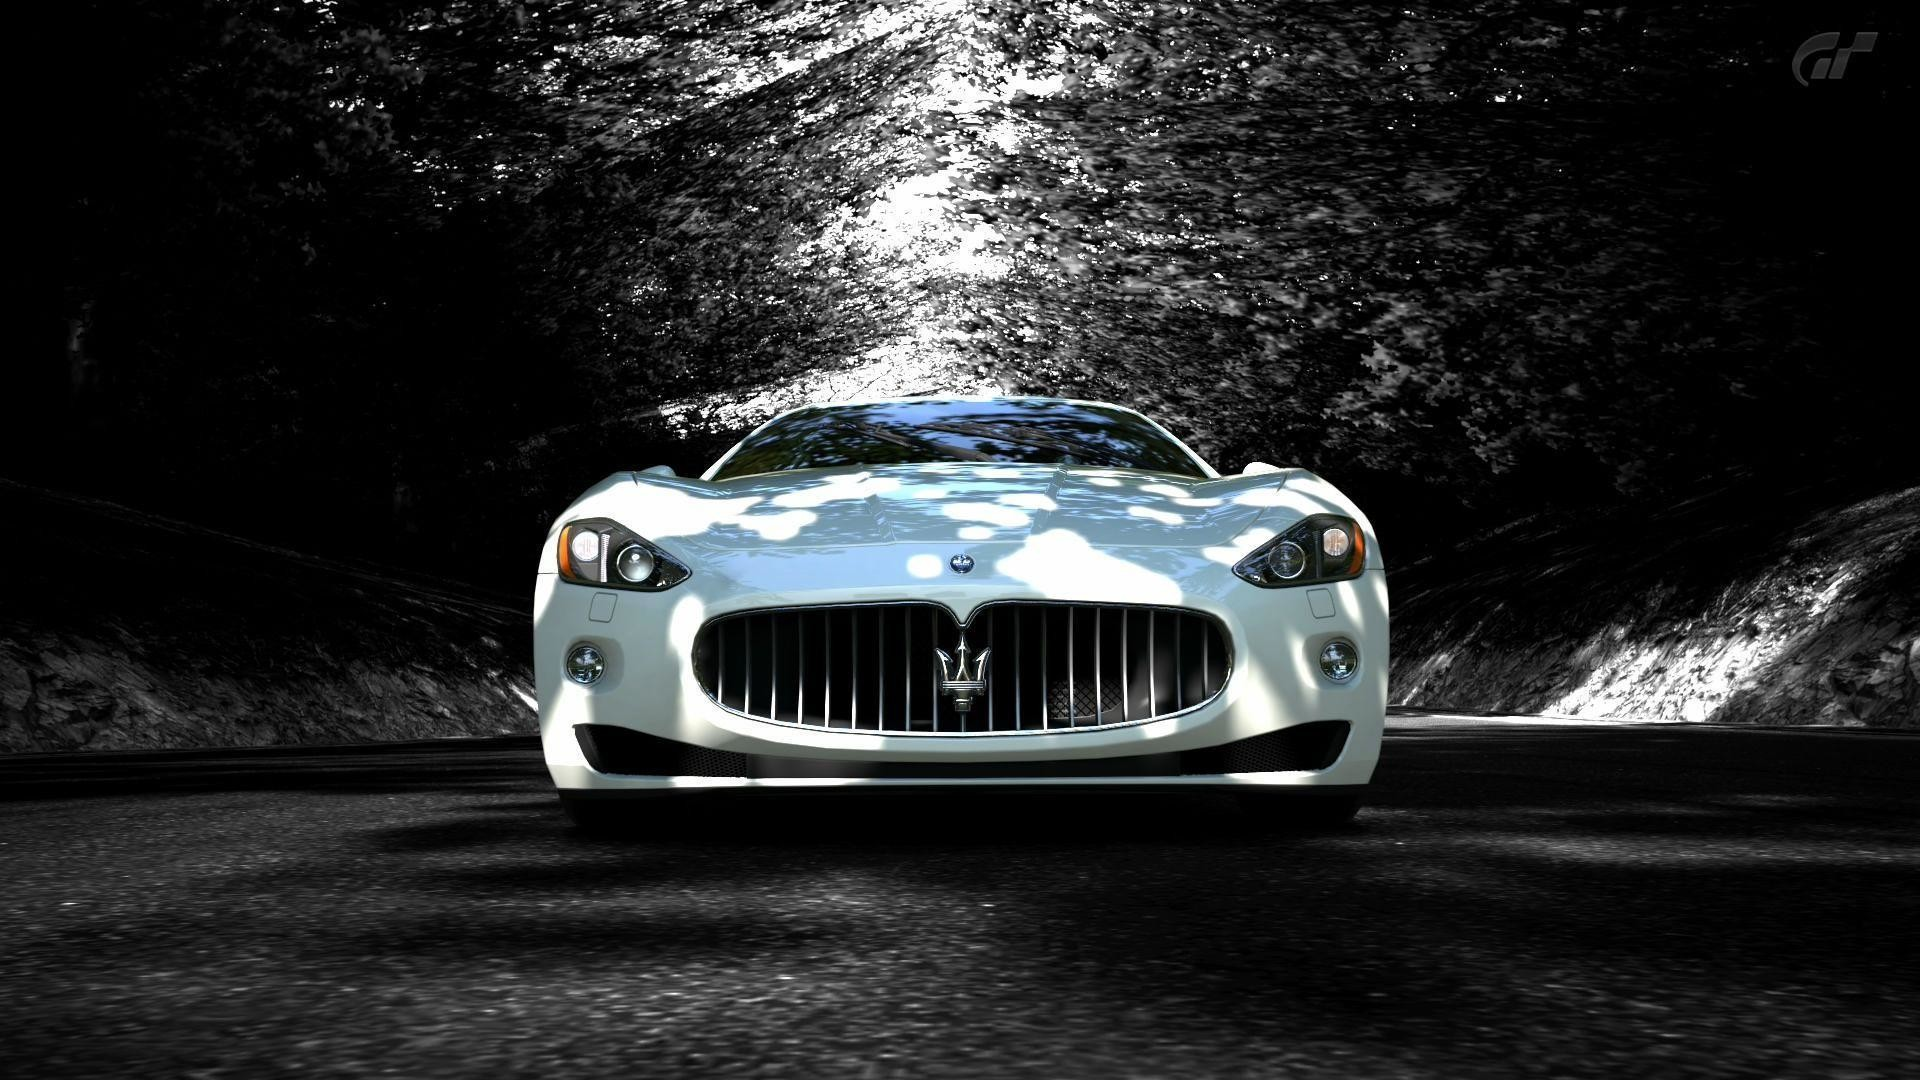 1920x1080 Wallpapers For > Maserati Wallpaper 1080p